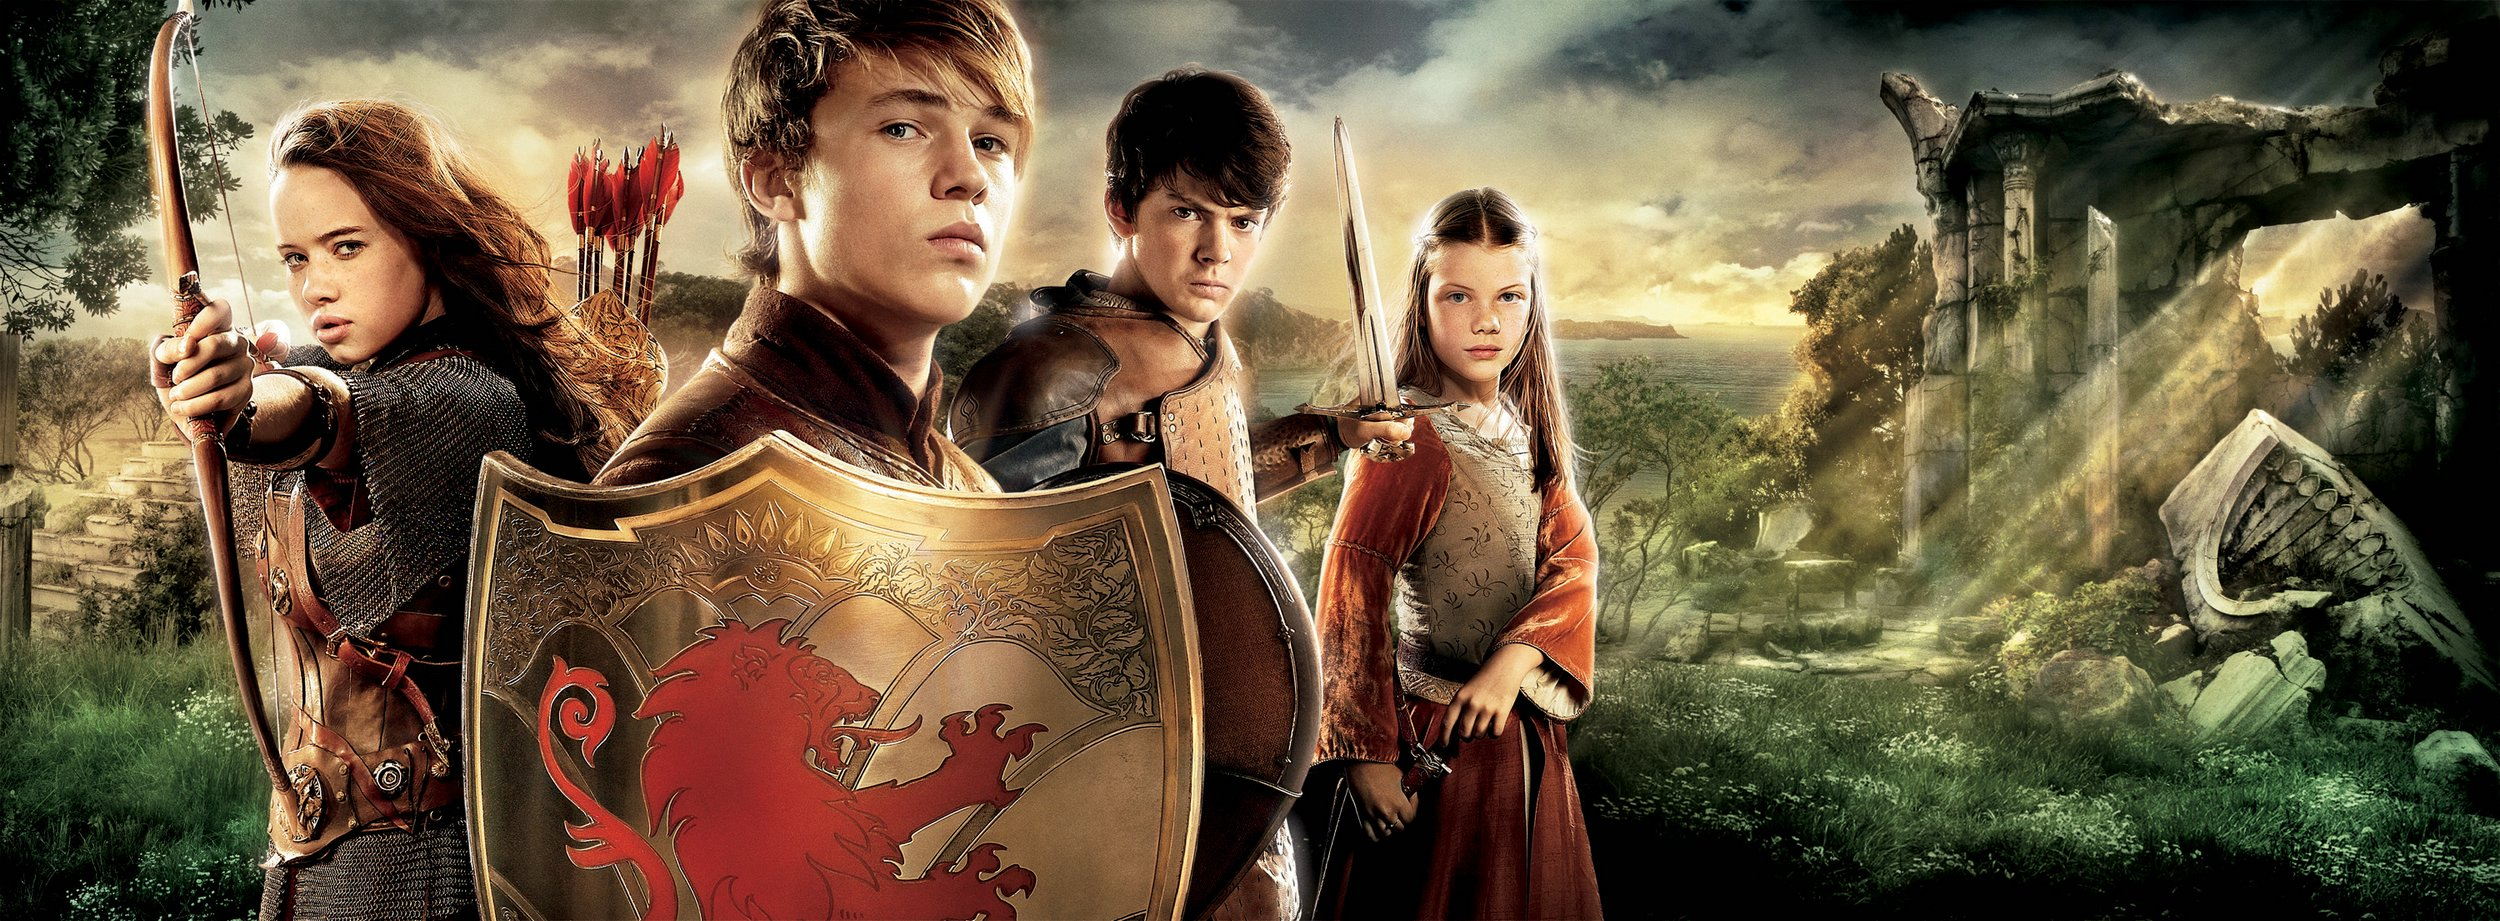 The Chronicles of Narnia 002